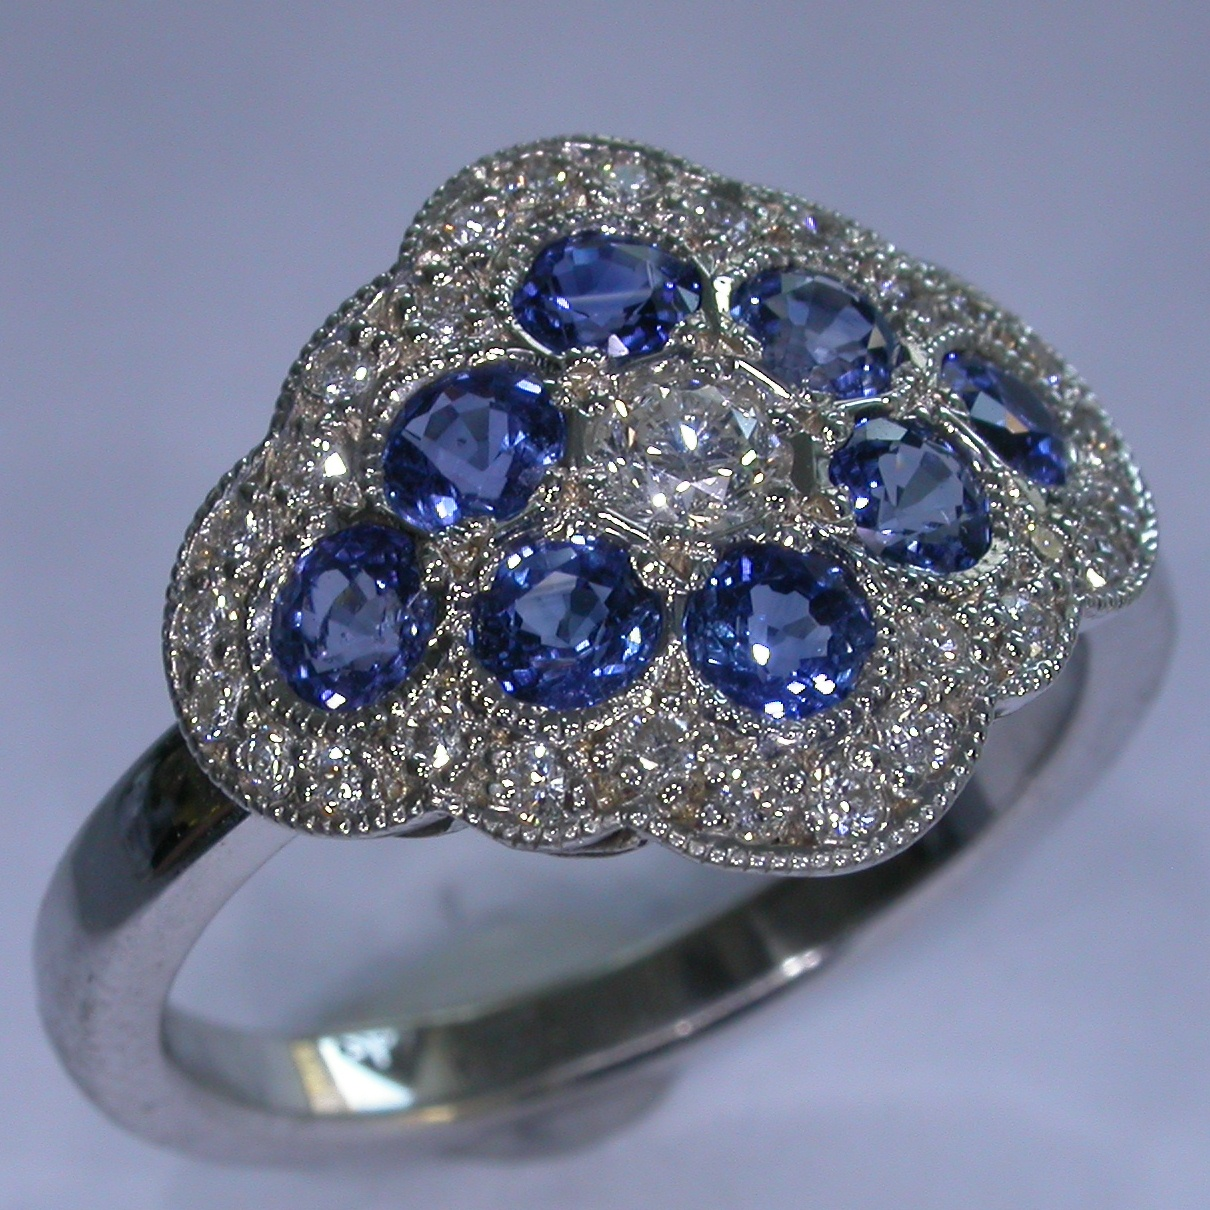 Melbourne Coloured Stone Rings - #7350